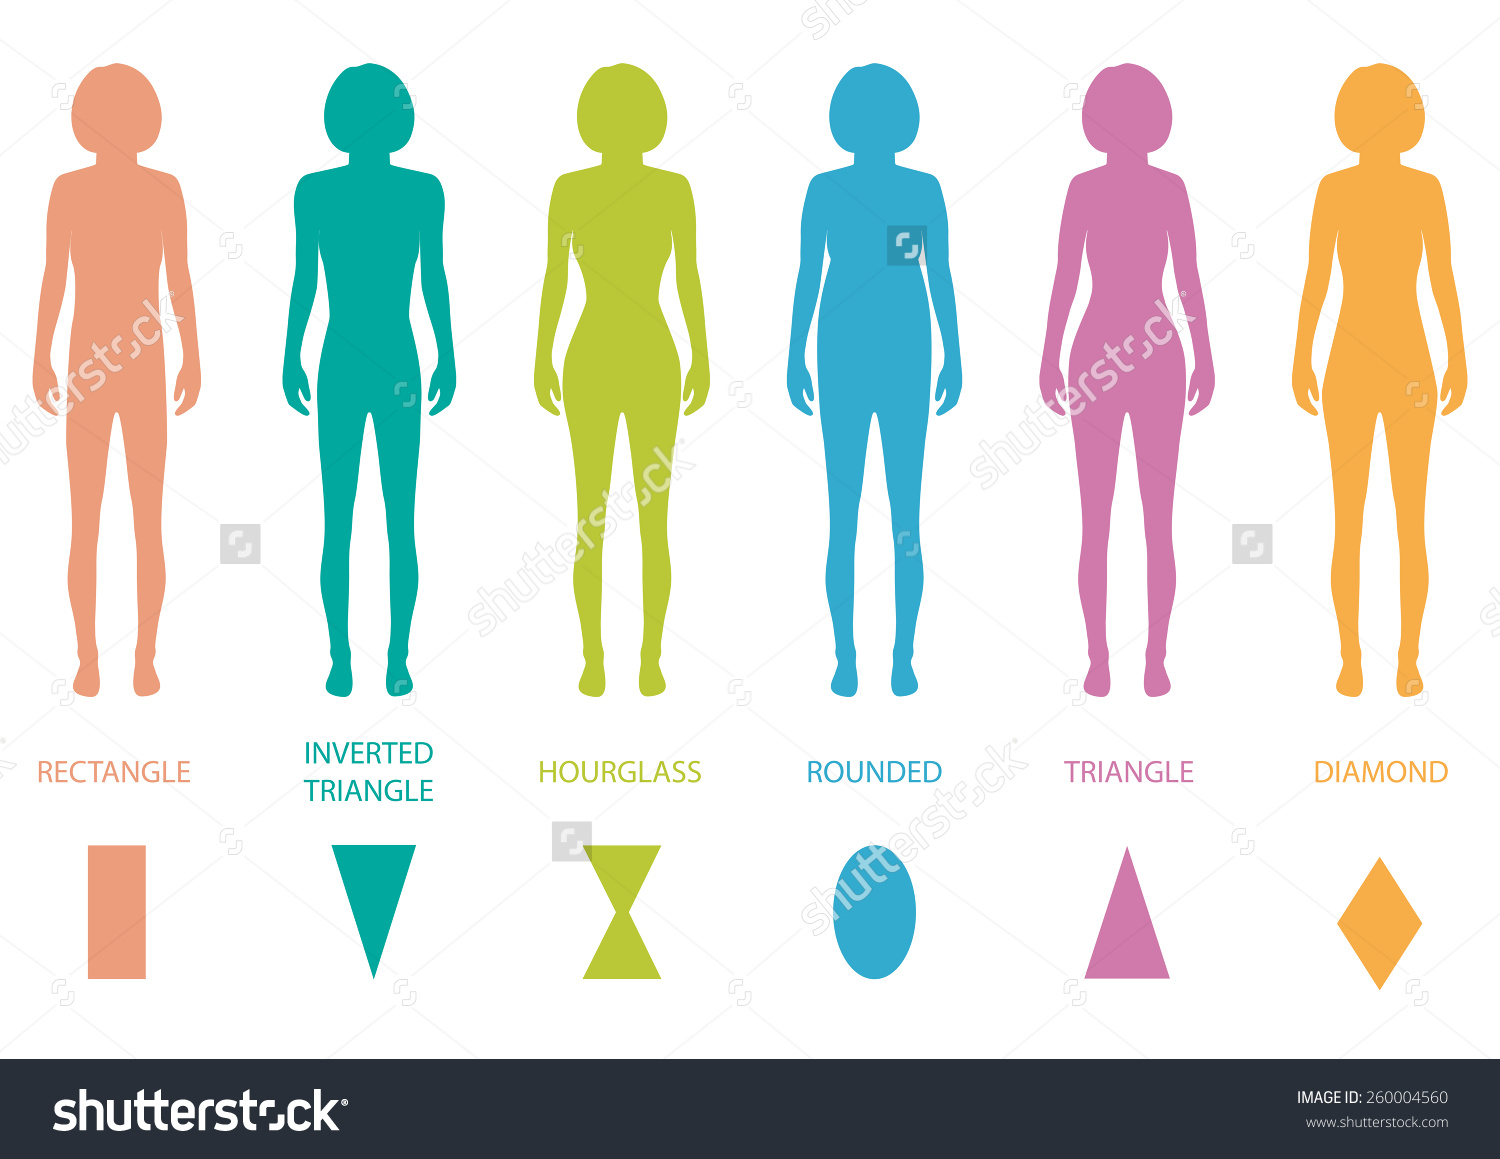 Girl figure with name. Body clipart body shape